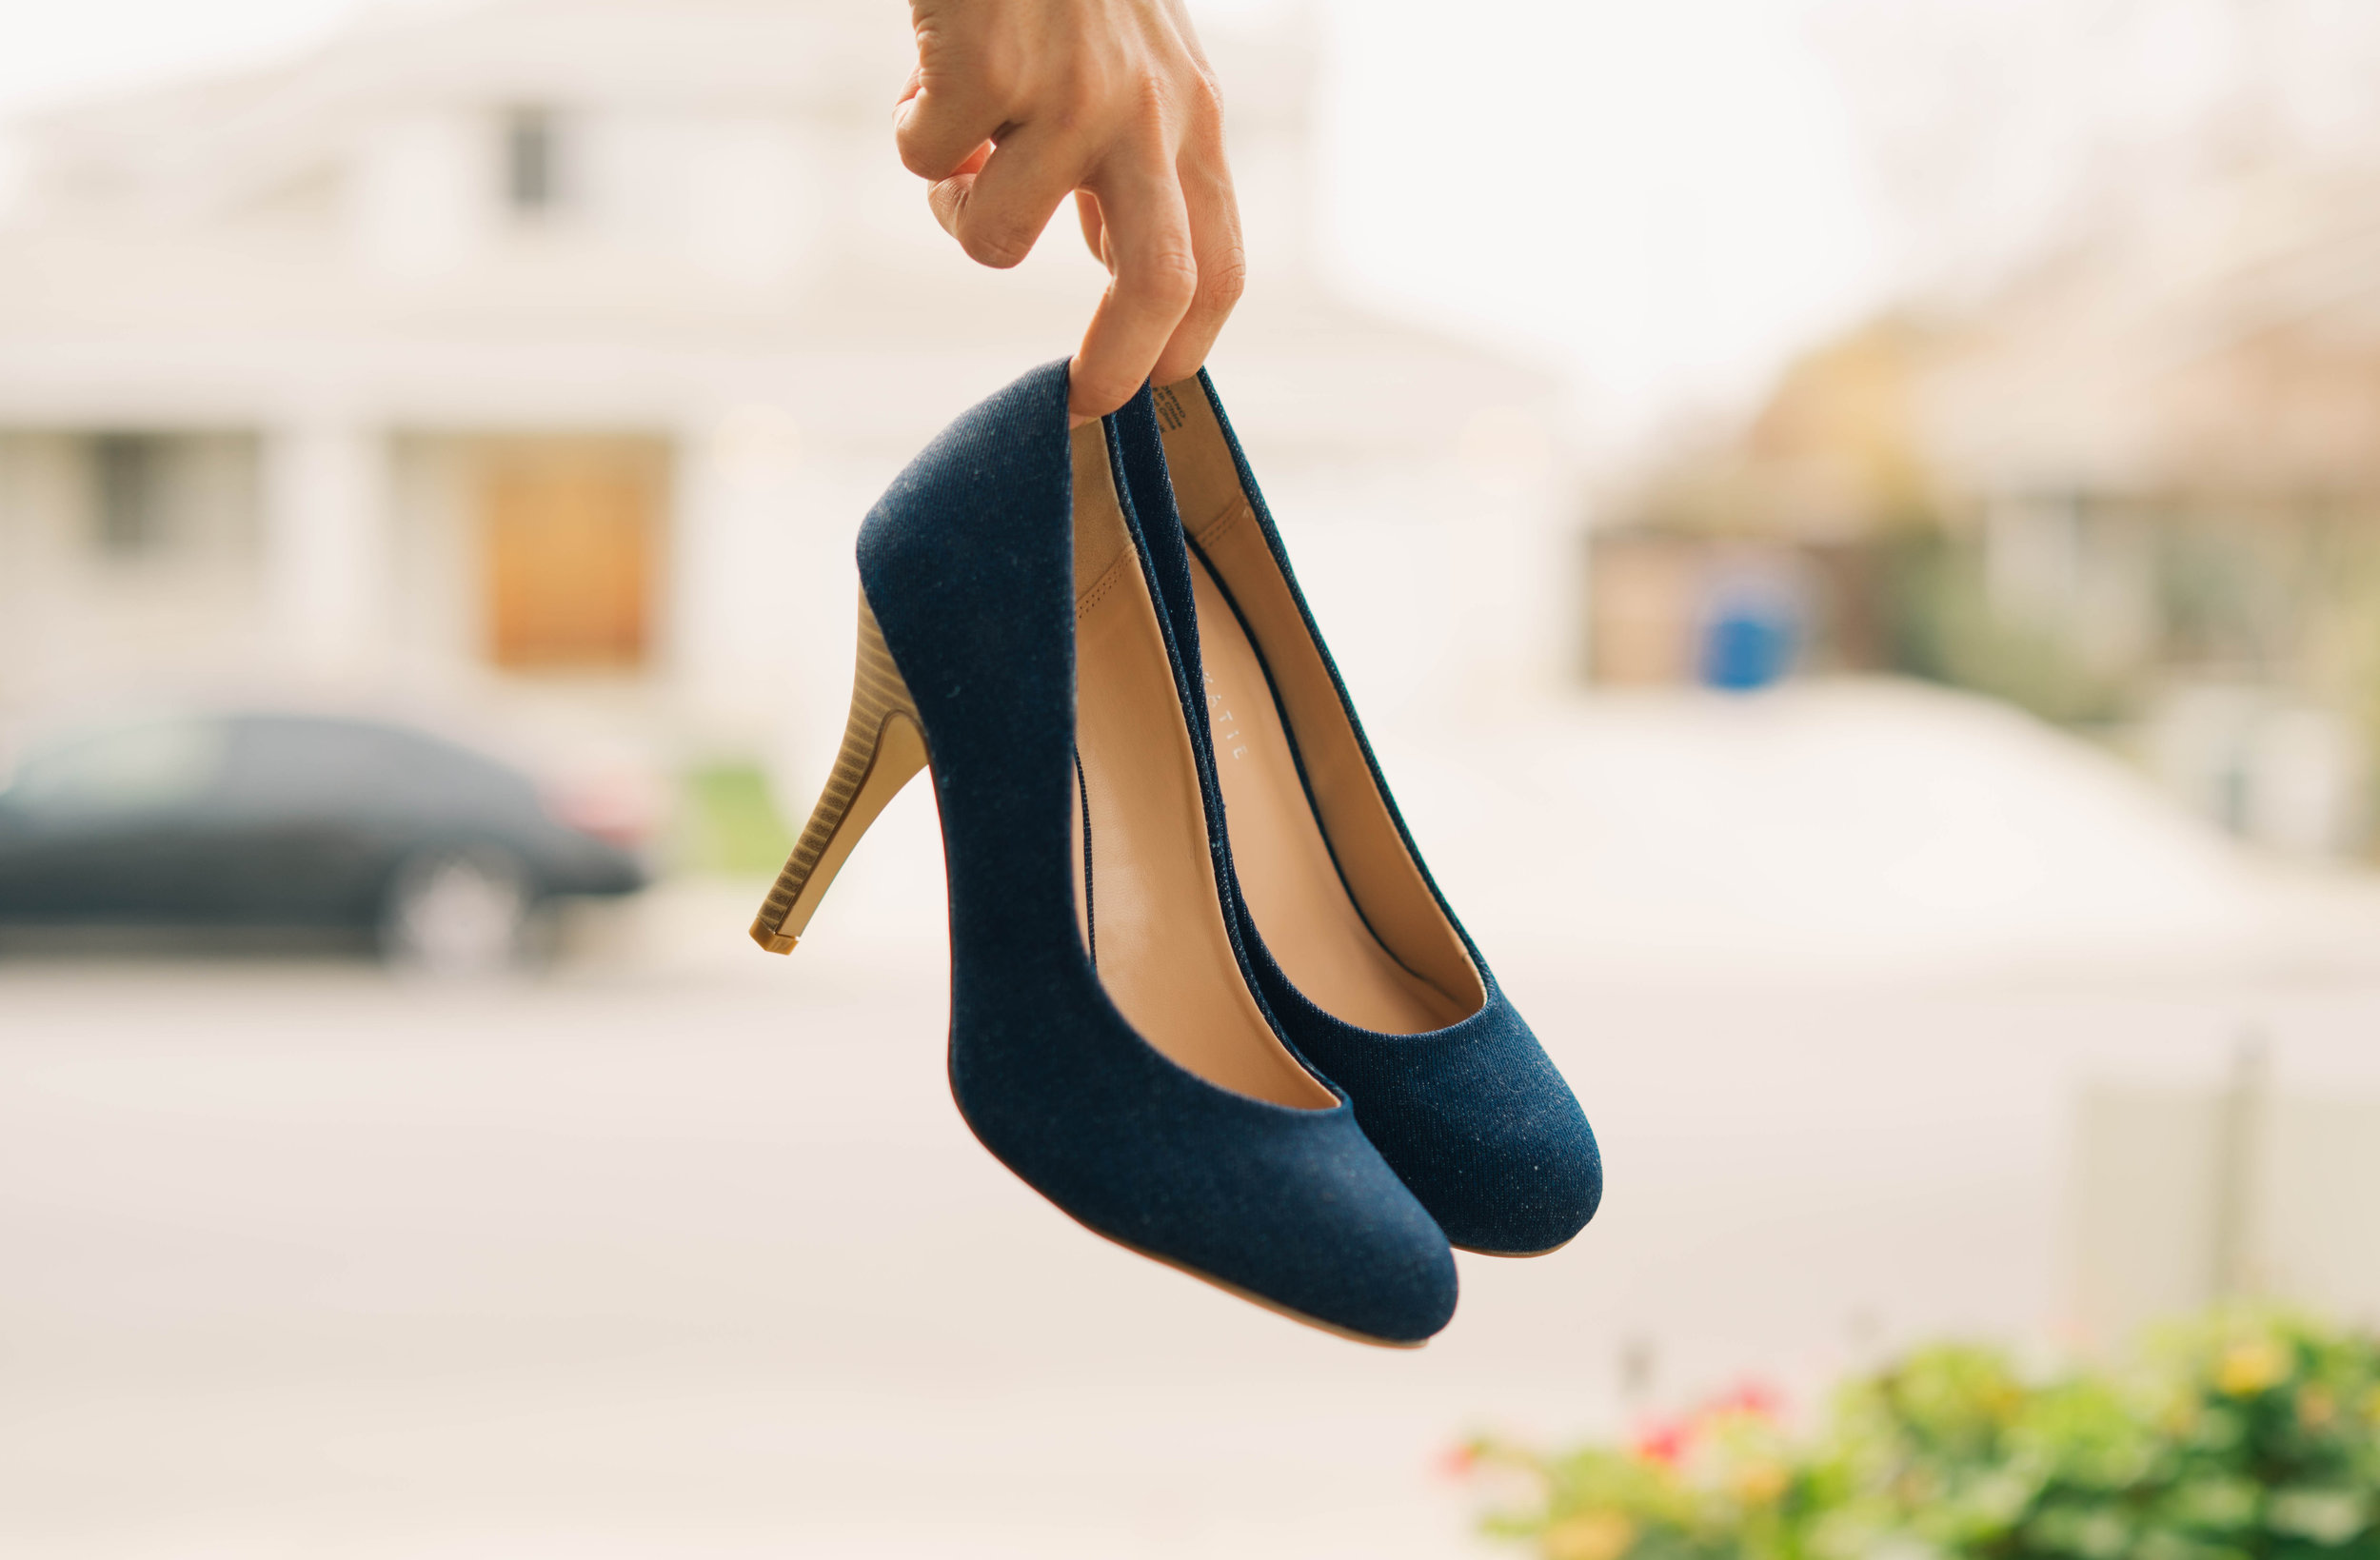 Wear sensible shoes. Unless you're going to a wedding, high heels have no place in the Catskills.